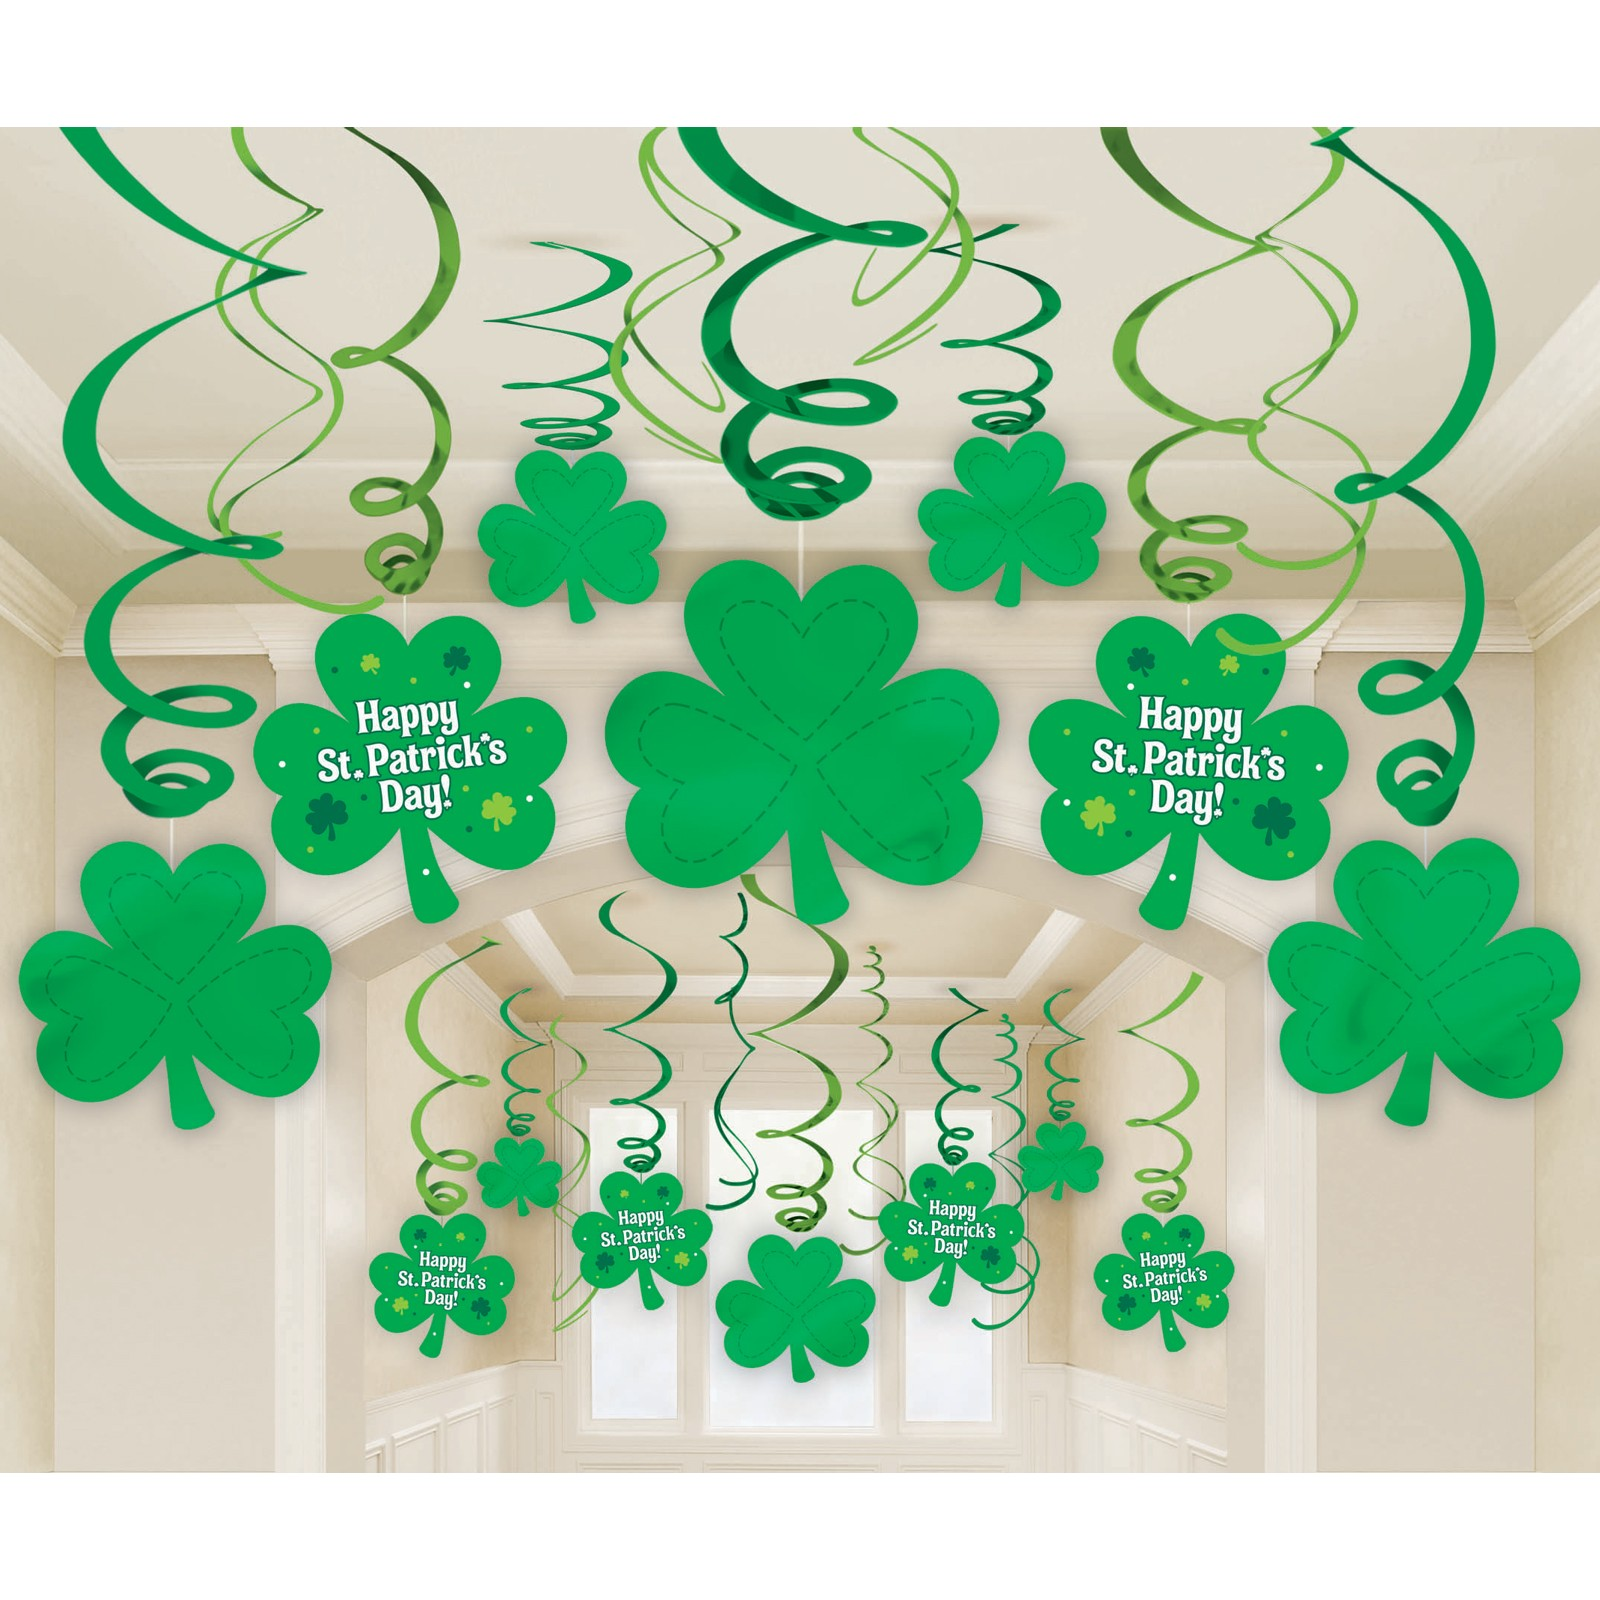 decorations and craft supplies - St Patricks Day Decorations